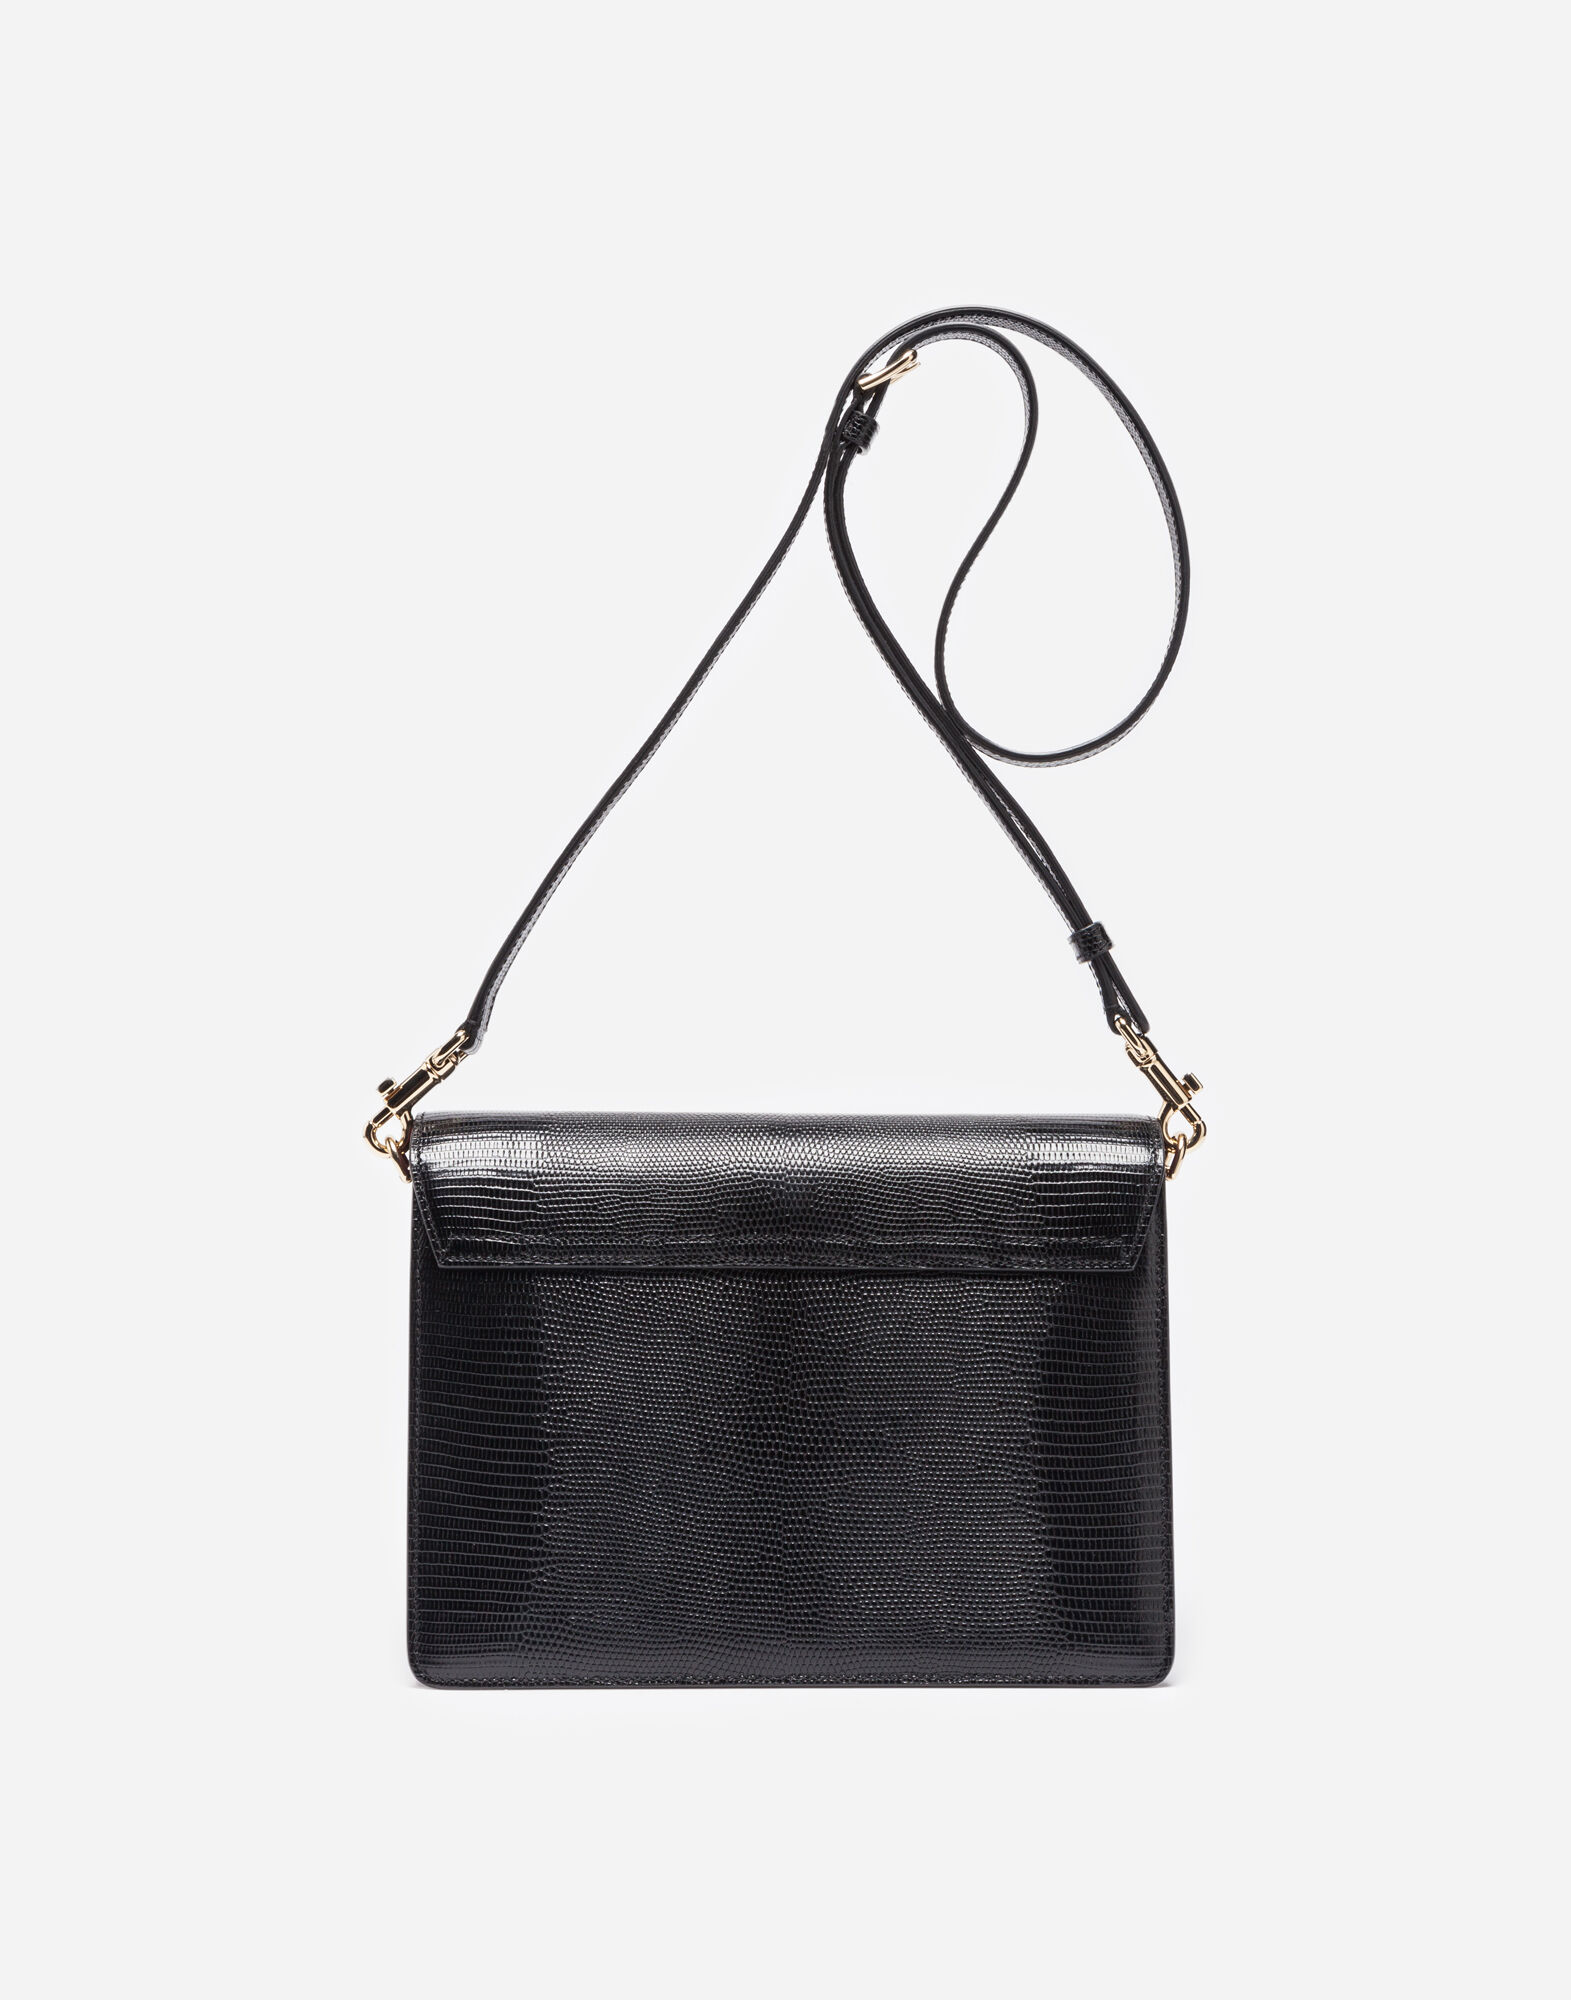 LEATHER LUCIA SHOULDER BAG